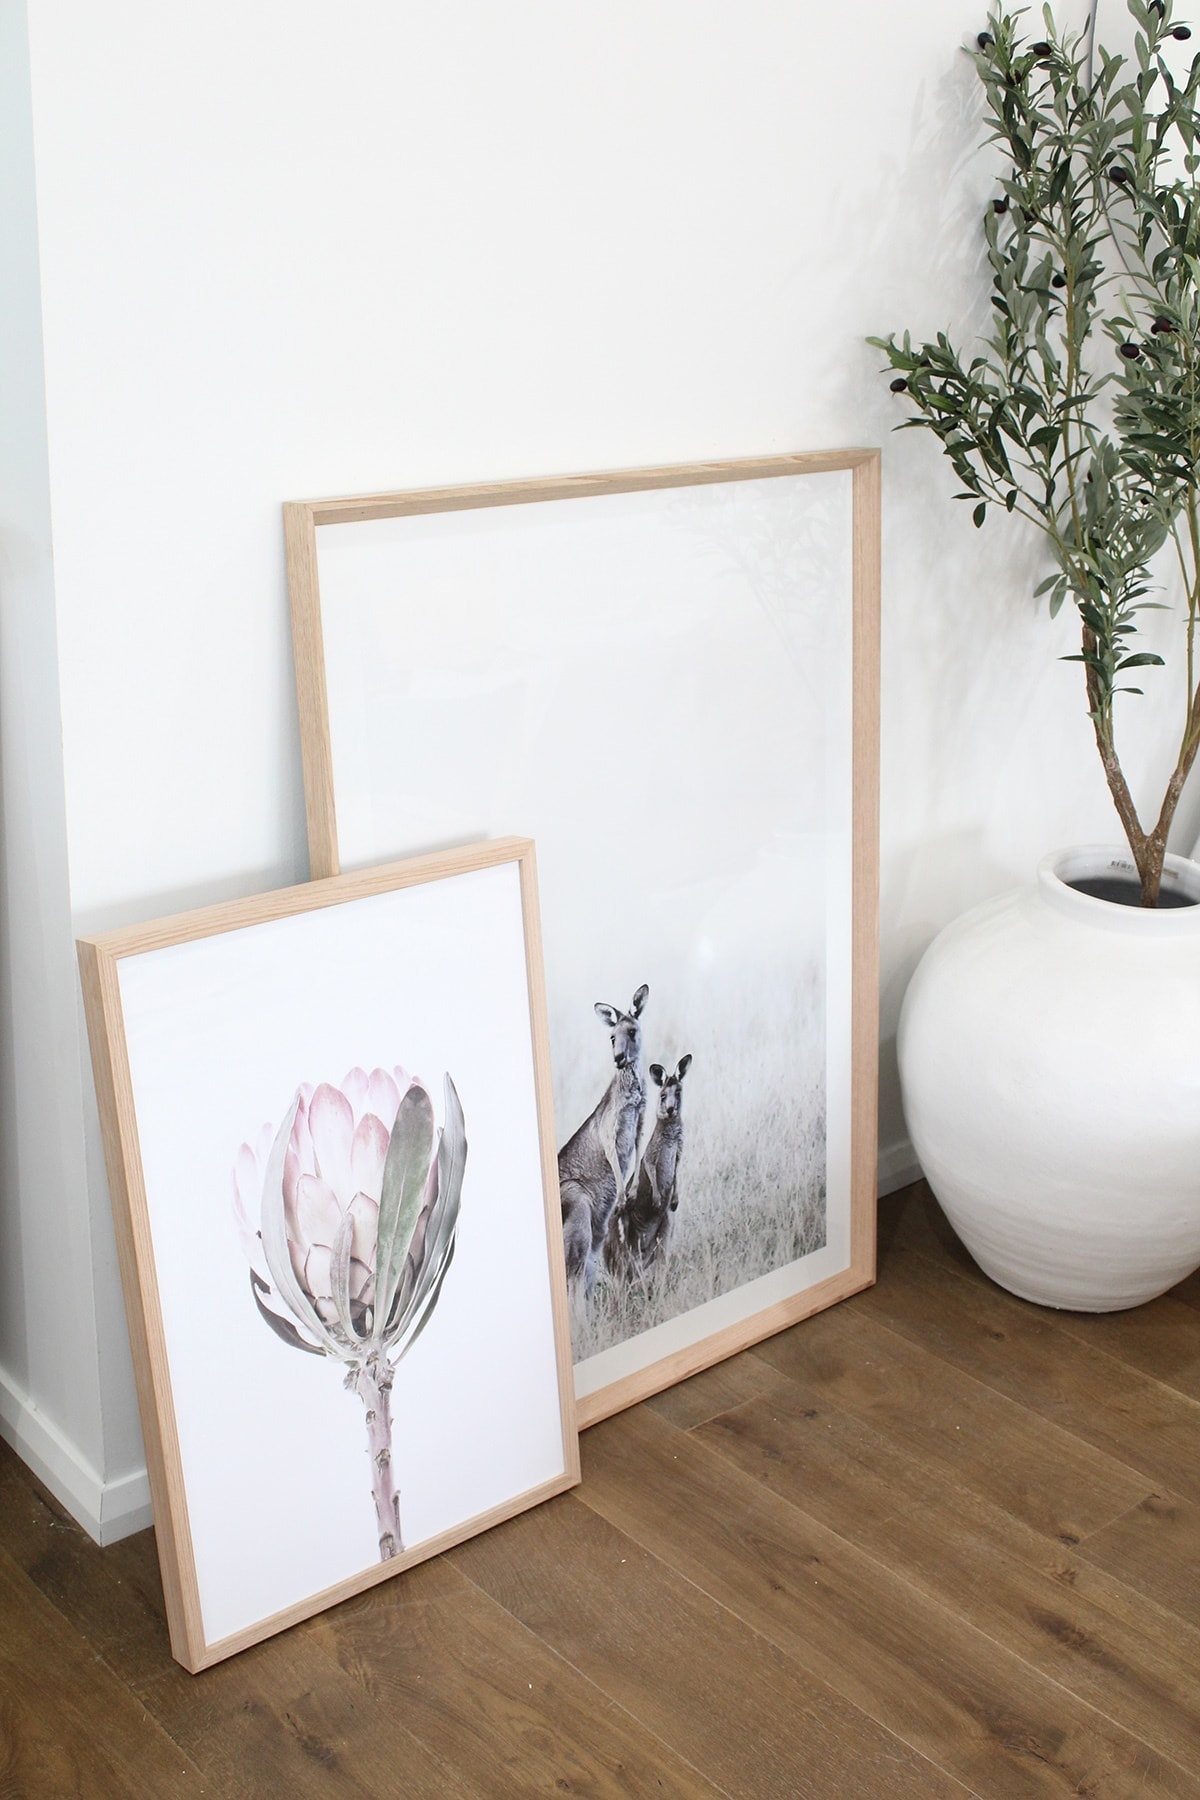 kangaroo artwork and floral artwork from hamptons at home store